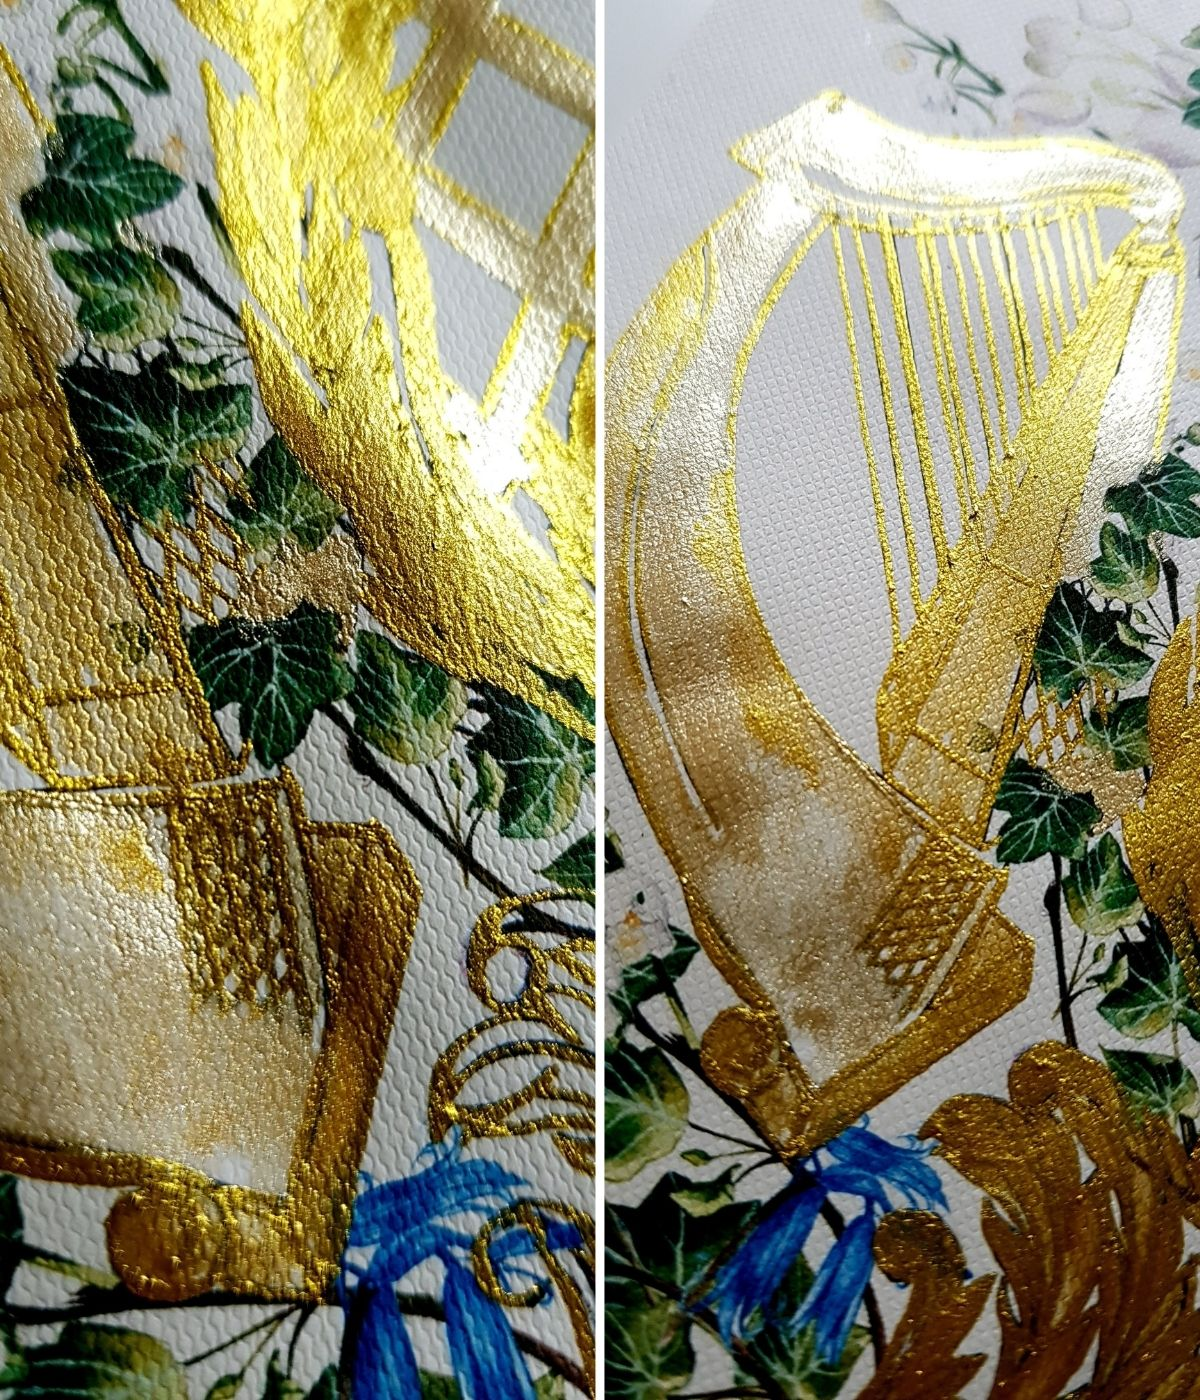 Golden harp design, hand made with gold calligraphy dip pen for a beautiful, striking yet elegant Ireland wedding invitations suite for a luxury elopement in the country